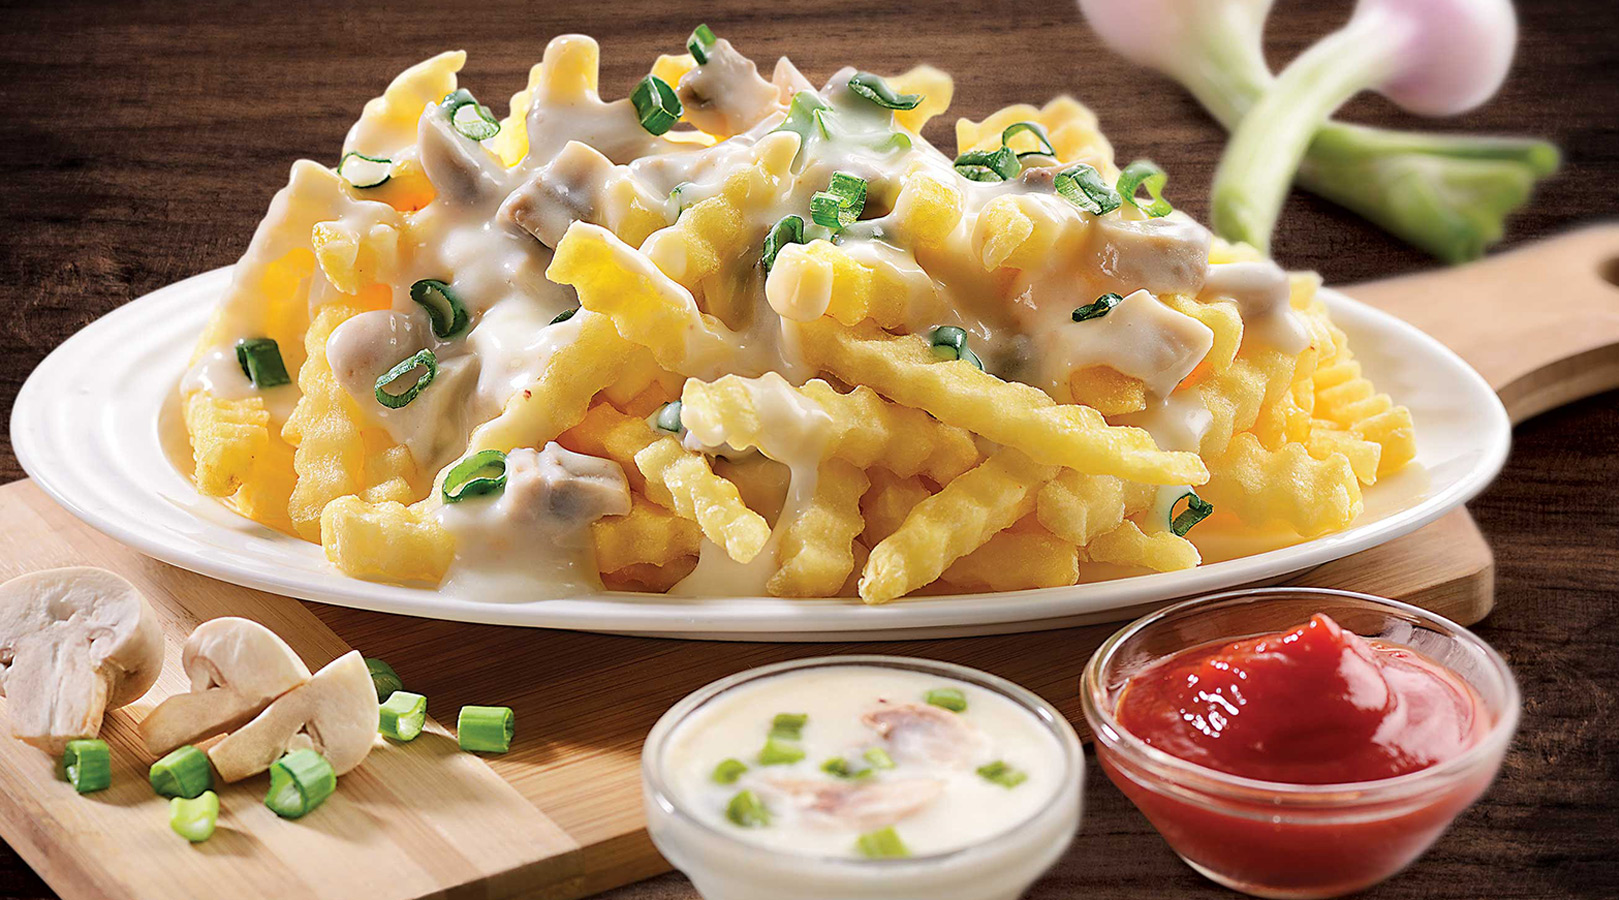 Fries Salad with McCain French Fries